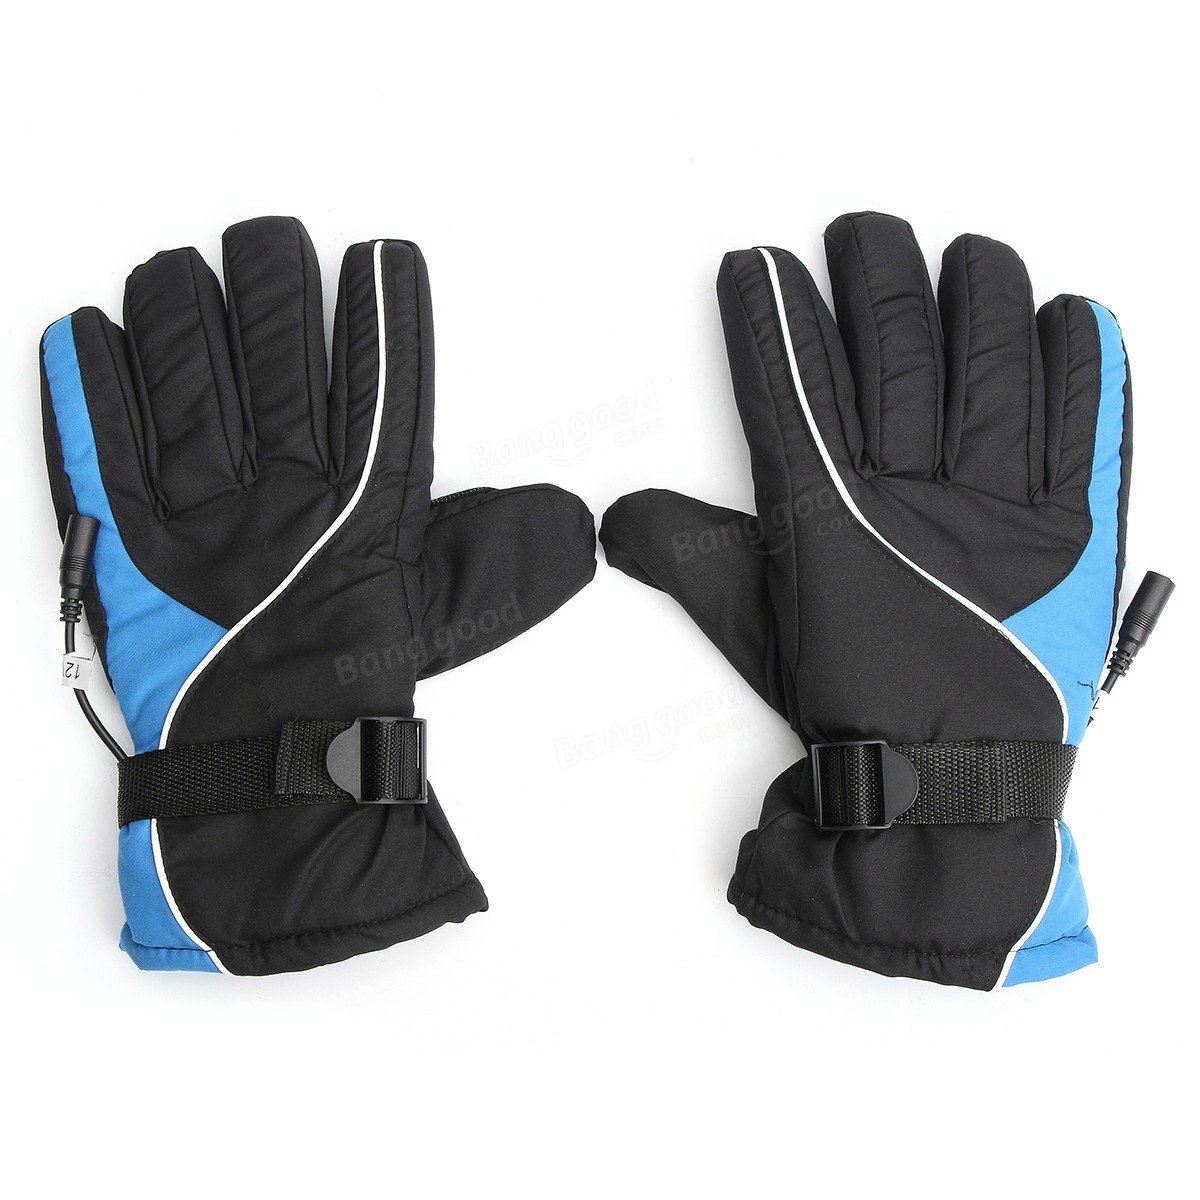 Heated motorcycle gloves new zealand - Electric Heated Heating Gloves